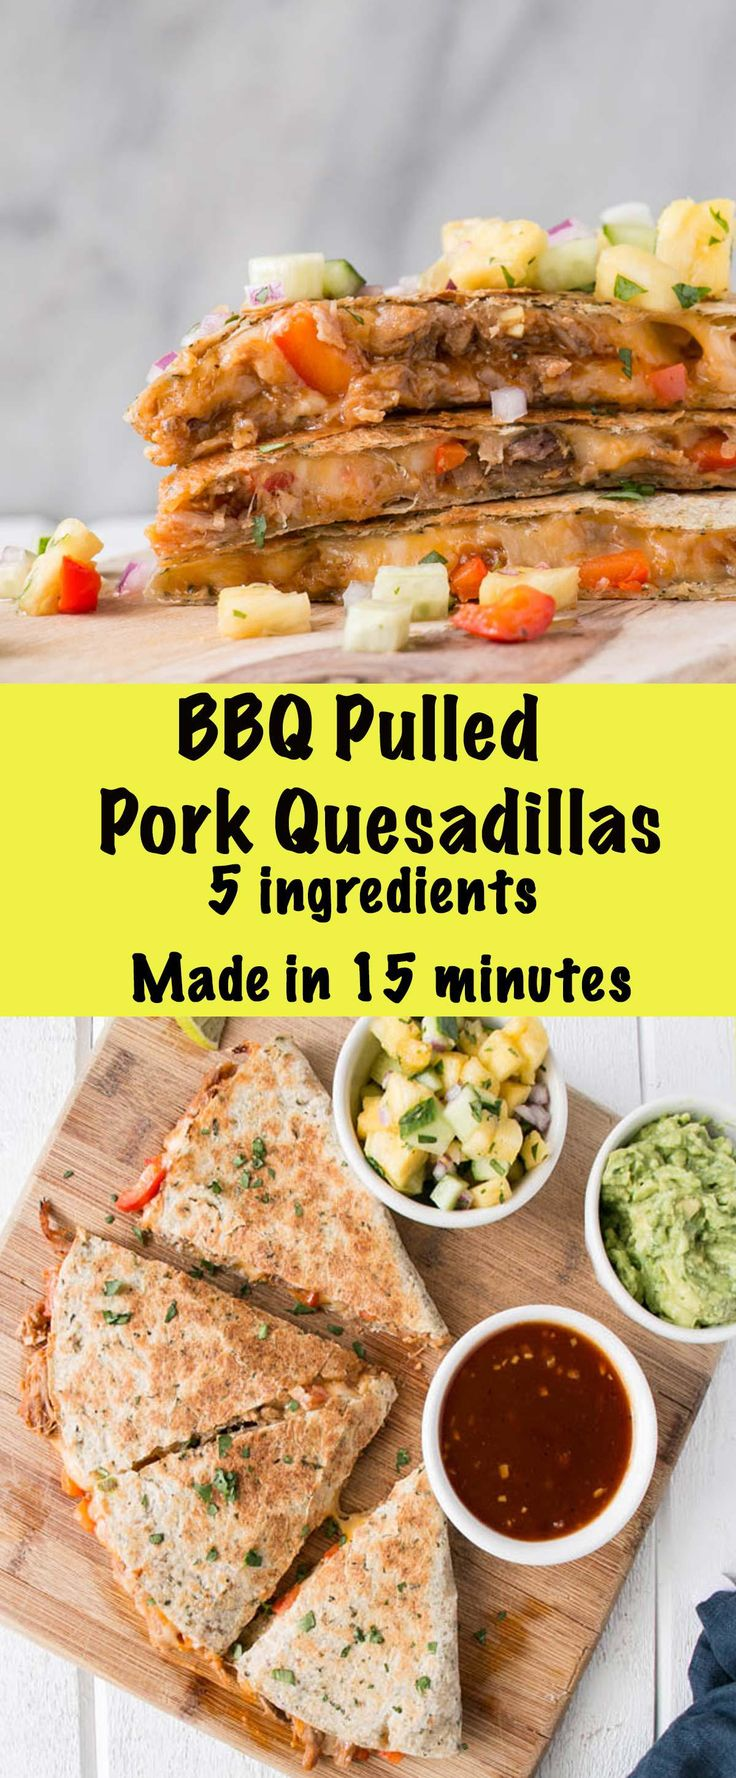 BBQ Pulled Pork Quesadillas are made in just 15 minutes with 5 ingredients!! Weekday dinner win! #ad #MadeLikeHomemade